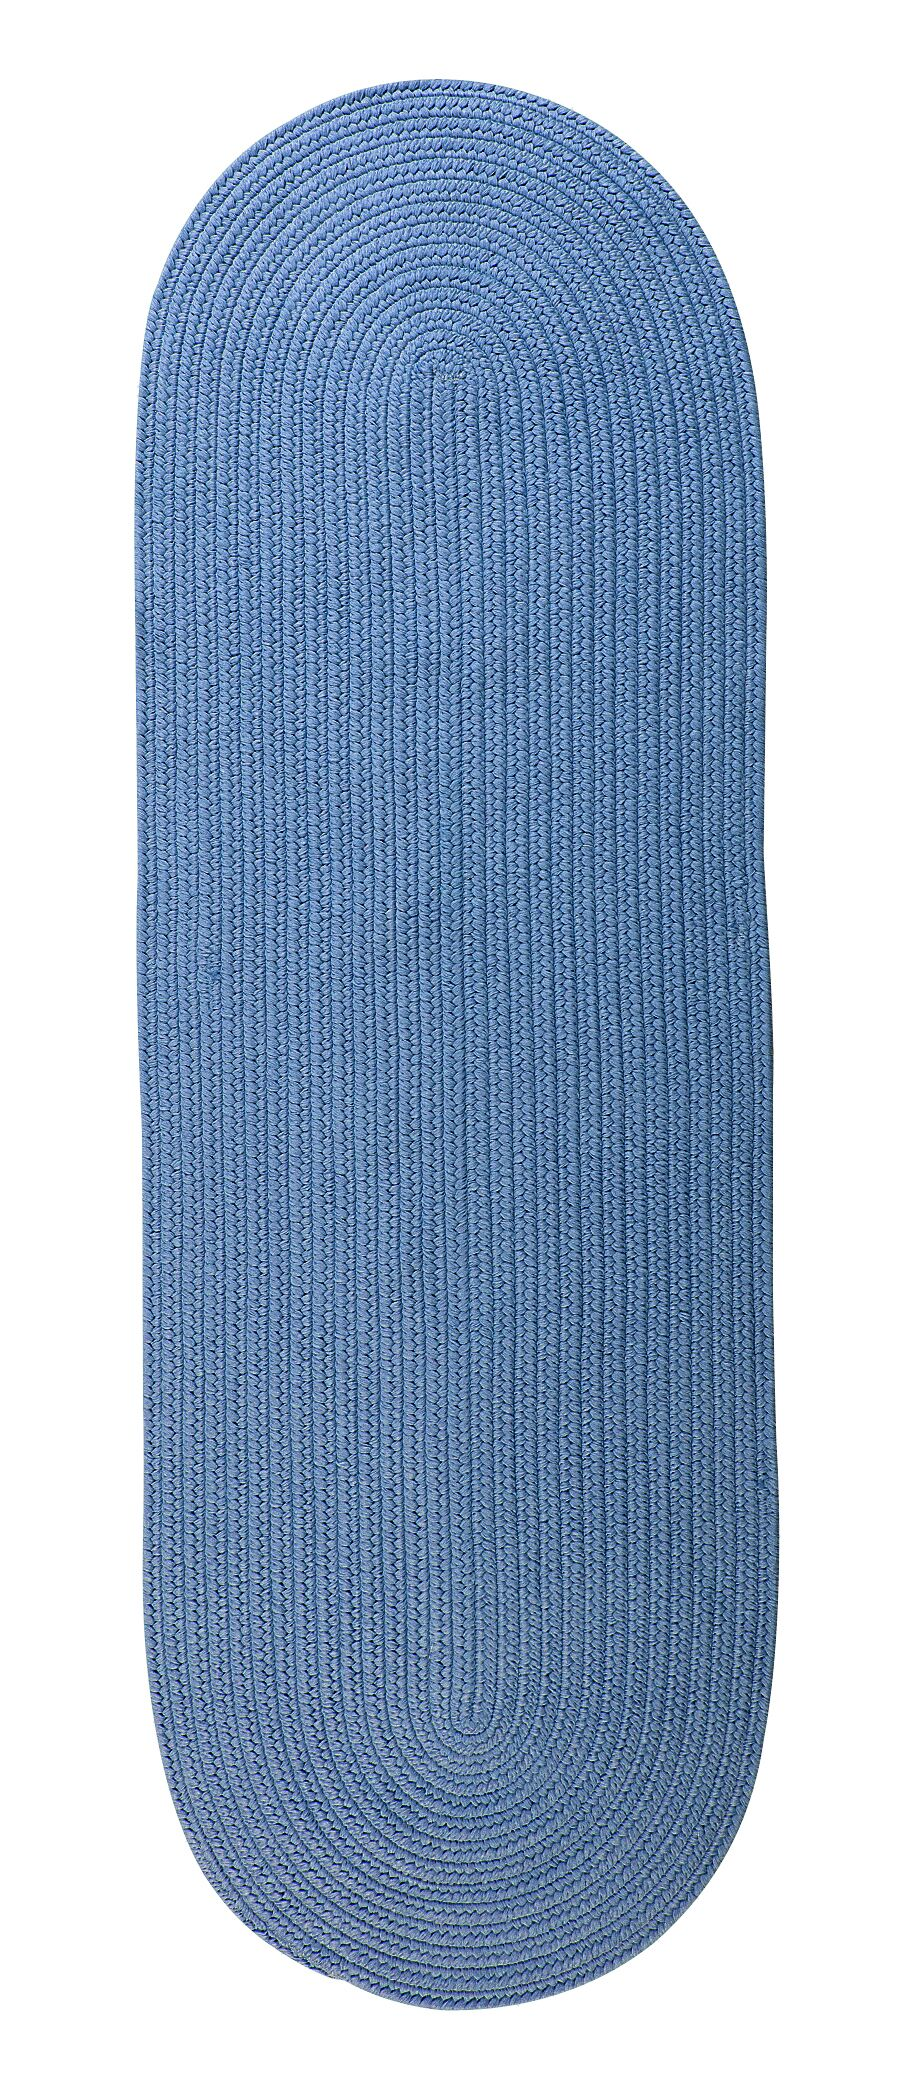 Mcintyre Blue Ice Outdoor Area Rug Rug Size: Oval Runner 2' x 12'